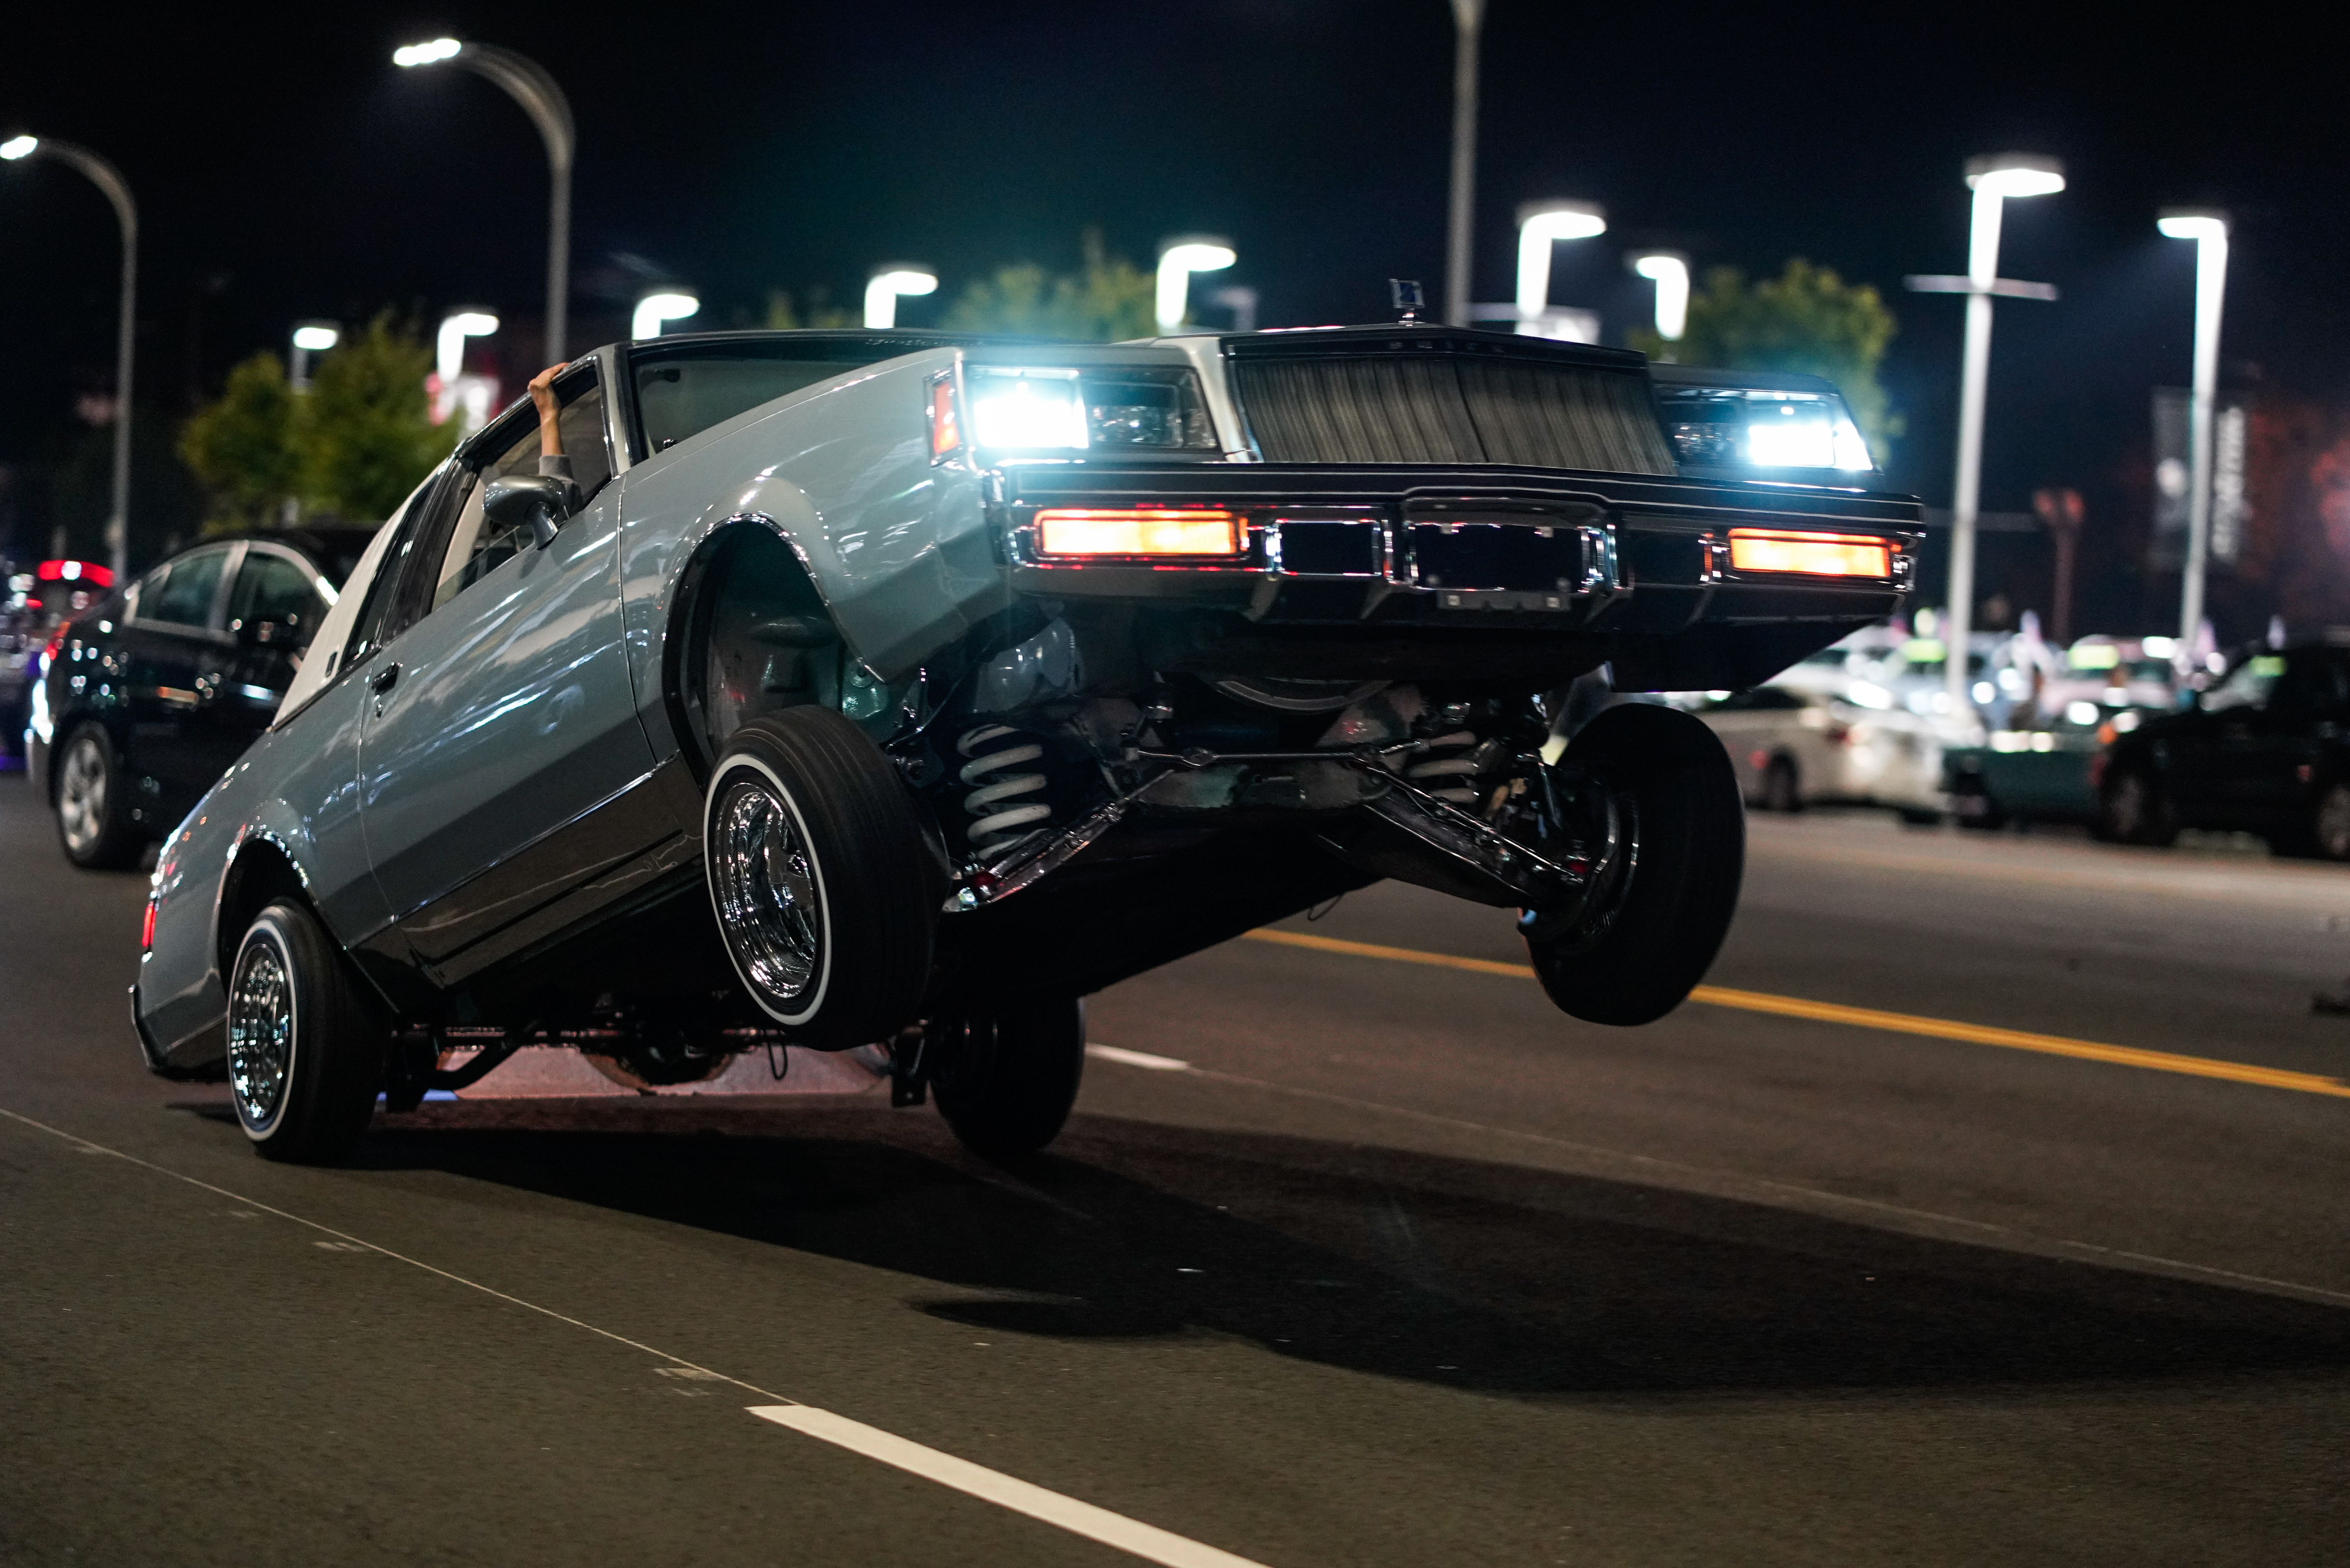 blue muscle car jumping in the road